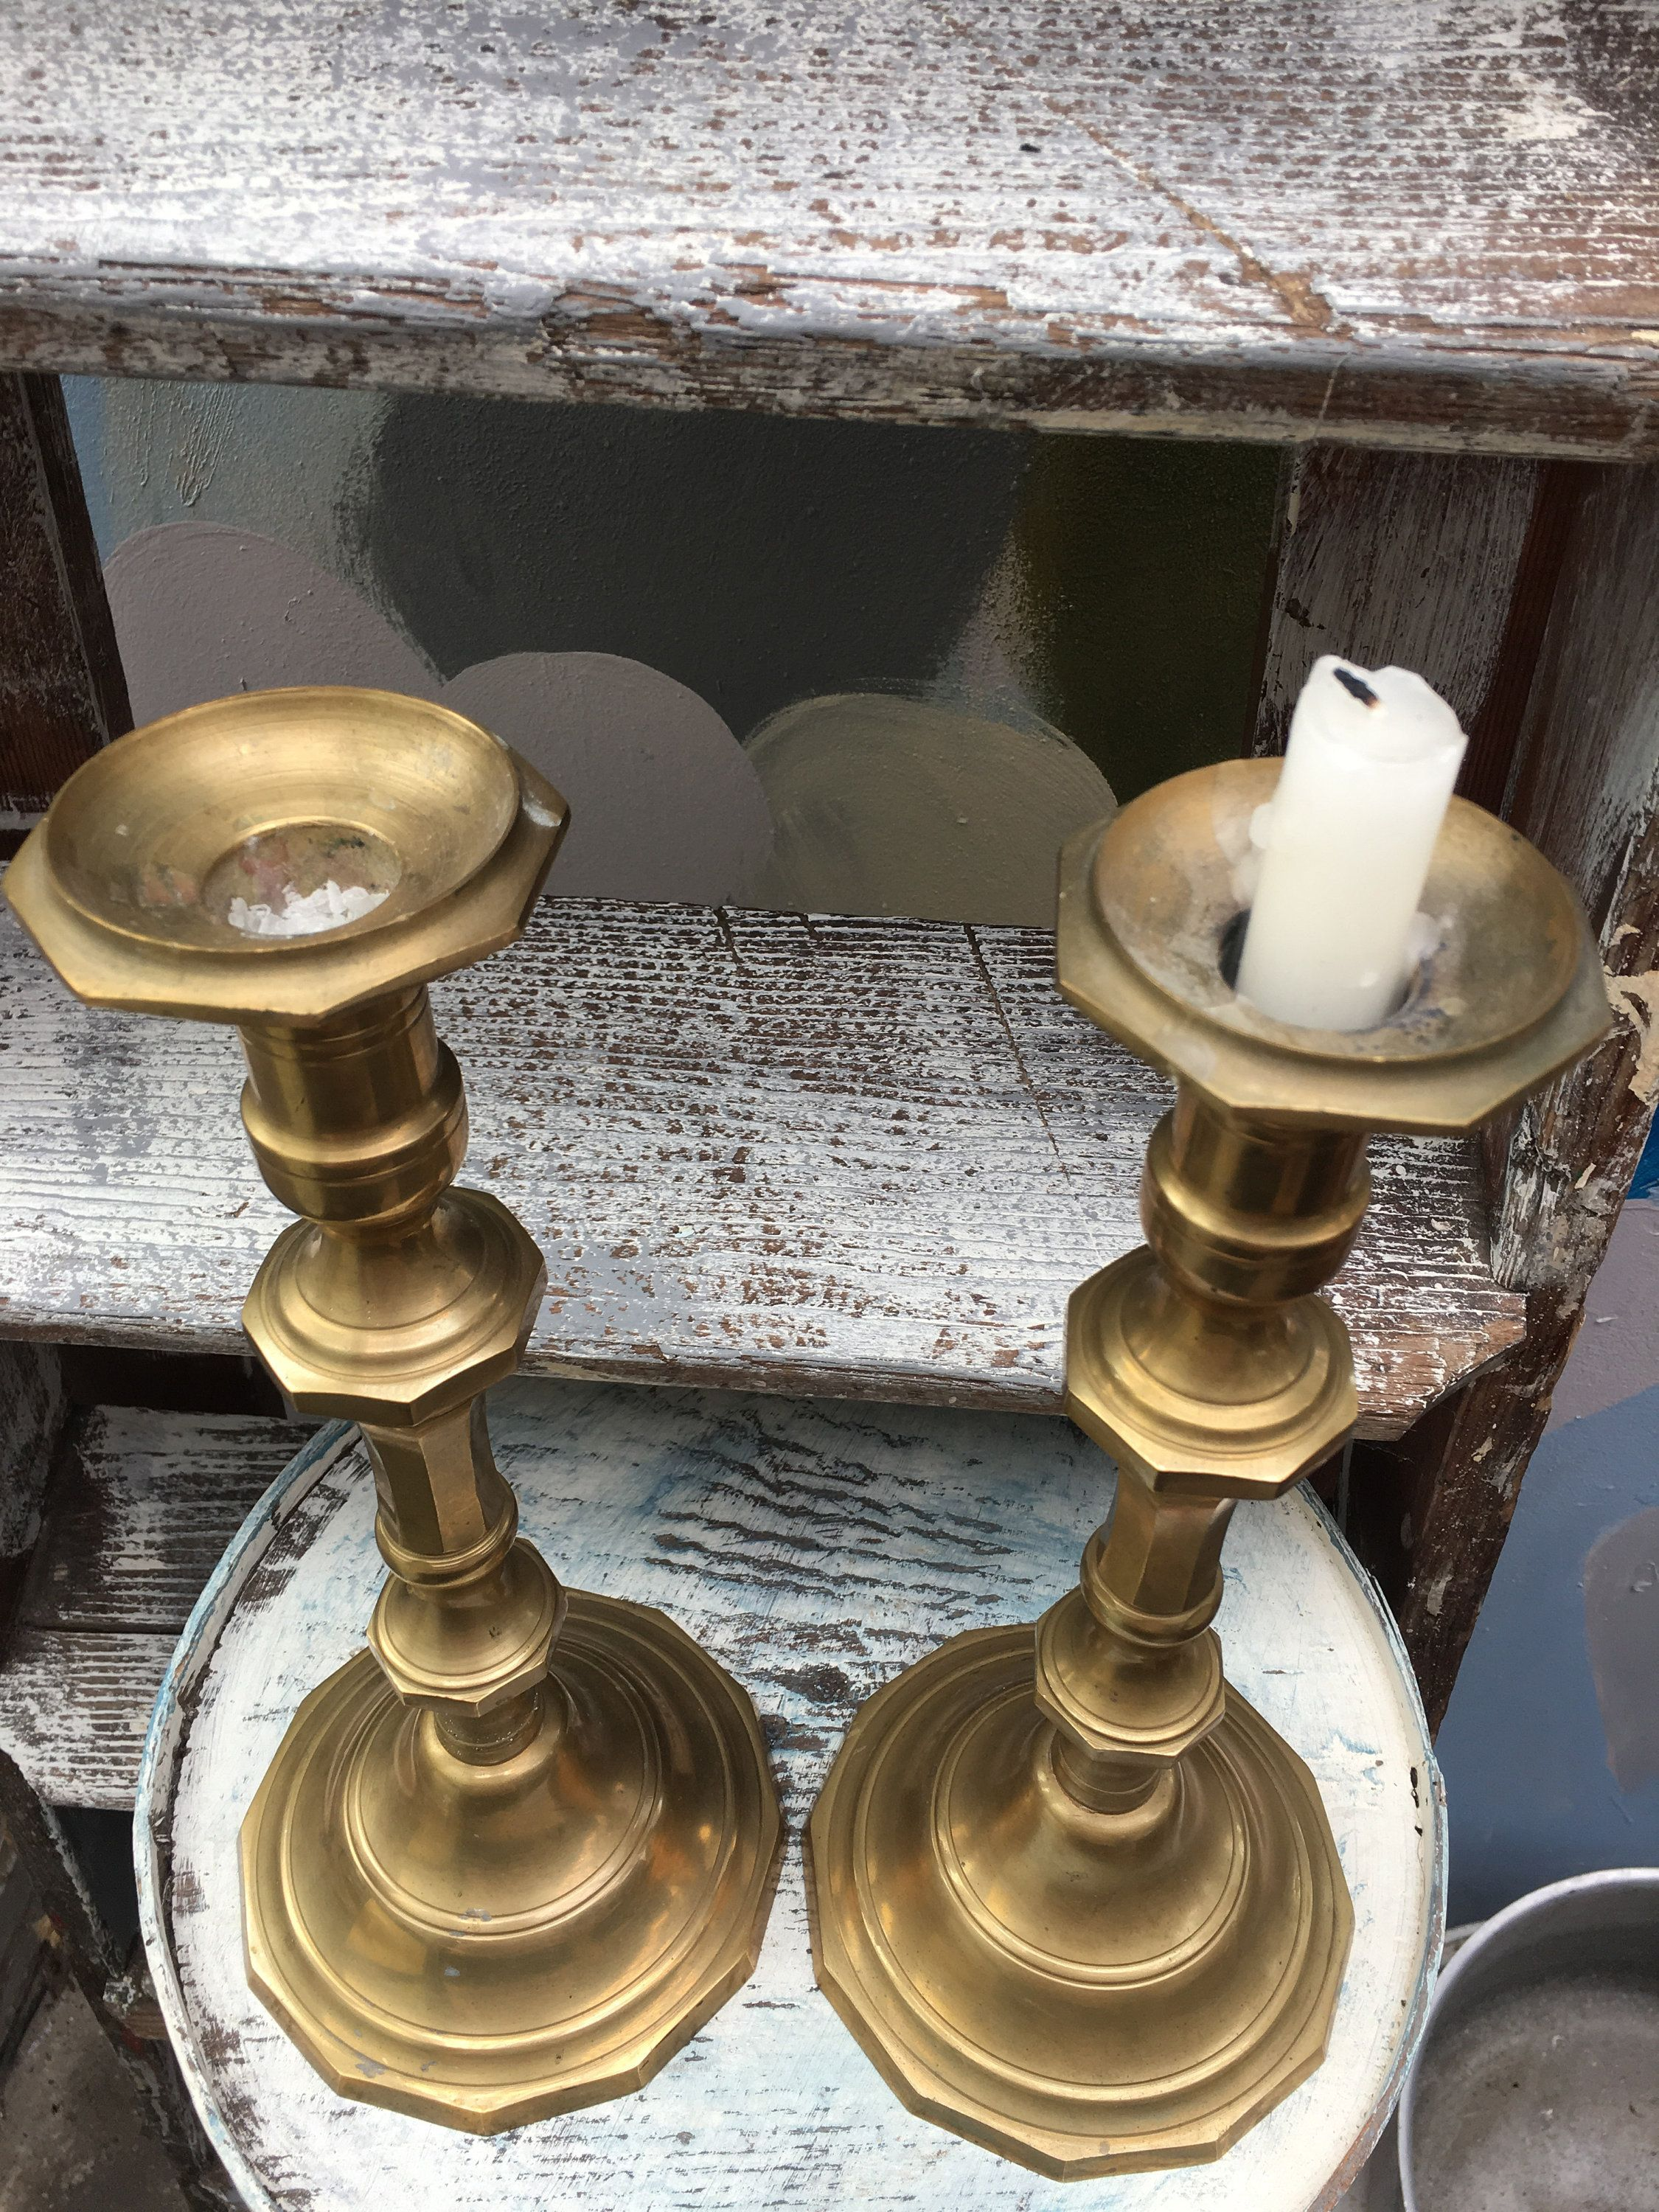 Vintage Brass Candlesticks Found In France Handmade Beaded Jewelry Etsy Hand Painted Signs